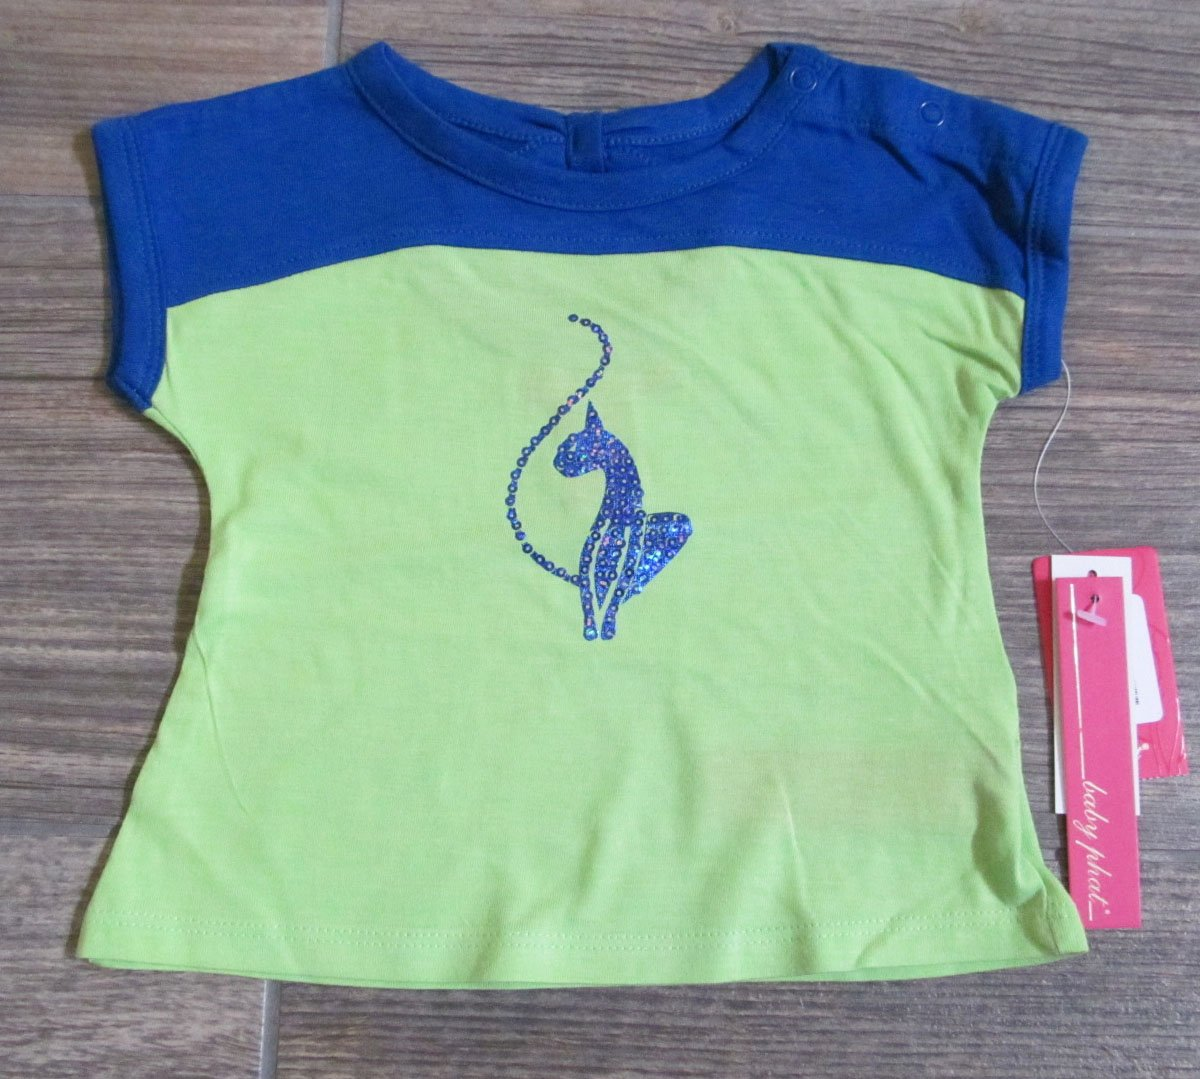 Baby Phat Girls 12 Mos T-shirt Colorblock Shirt with Bow Back Surf Royal Blue